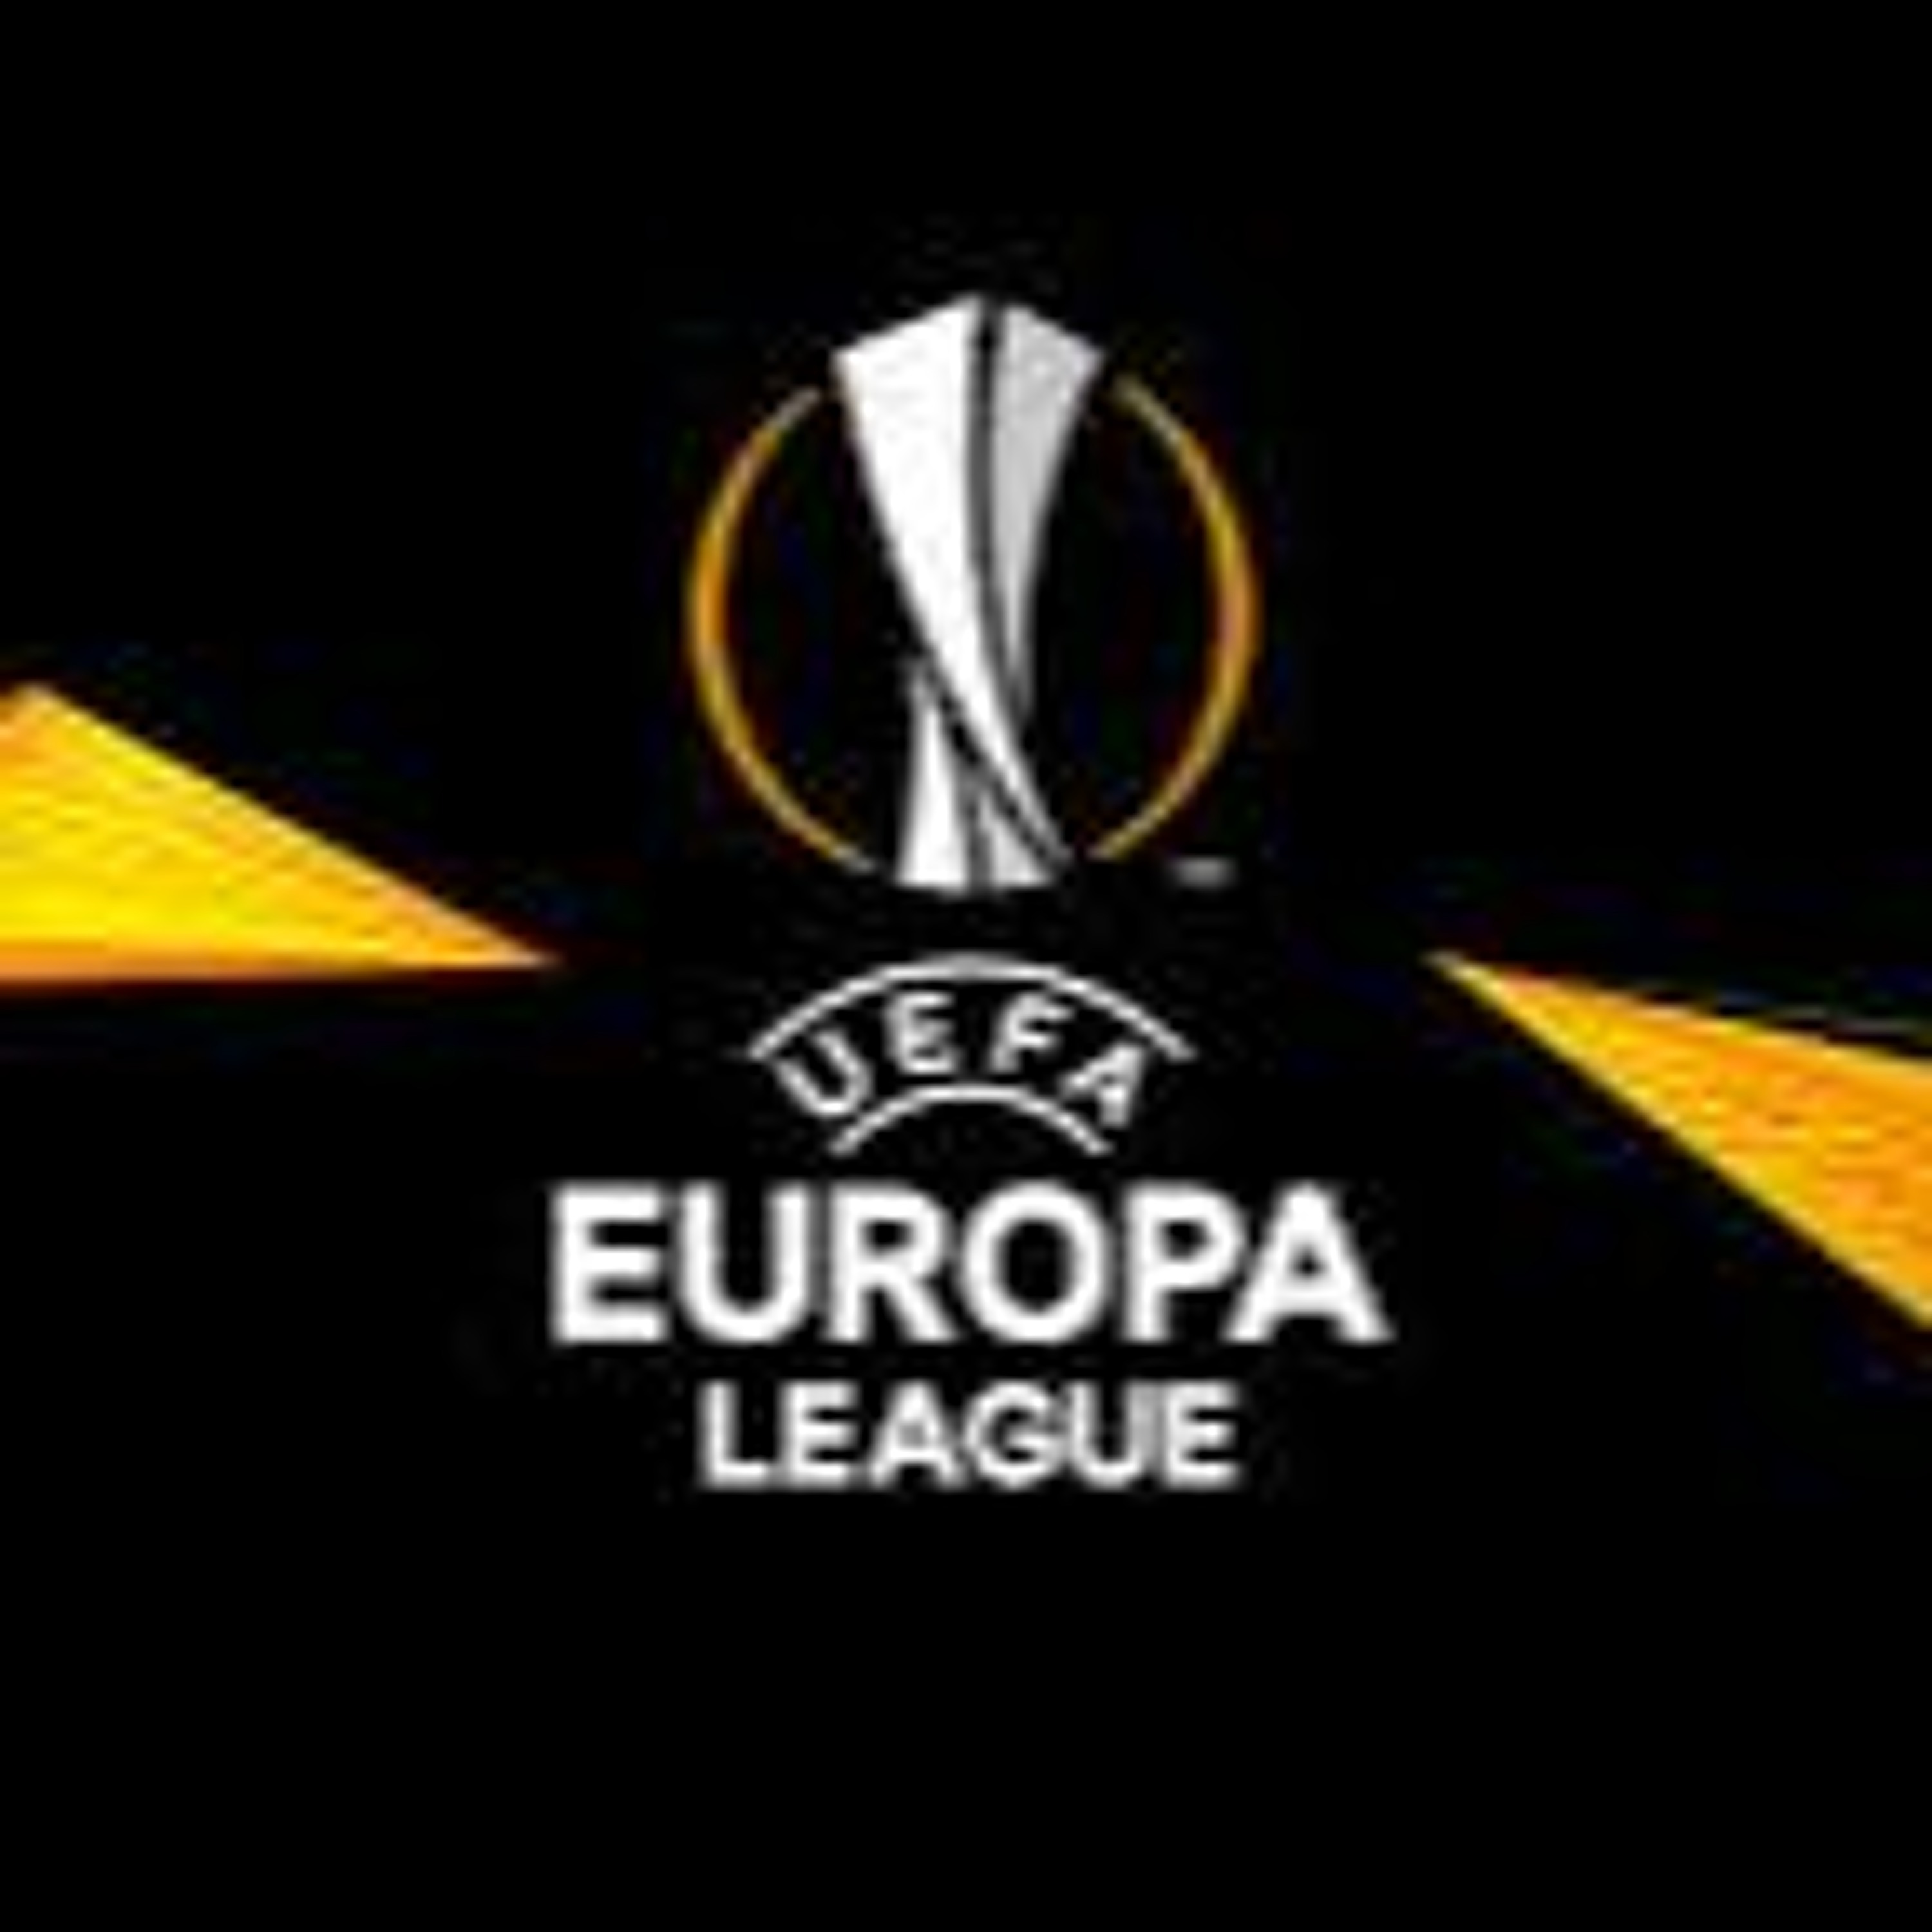 Episode 22 UEFA Europa League Match Day 1 Preview